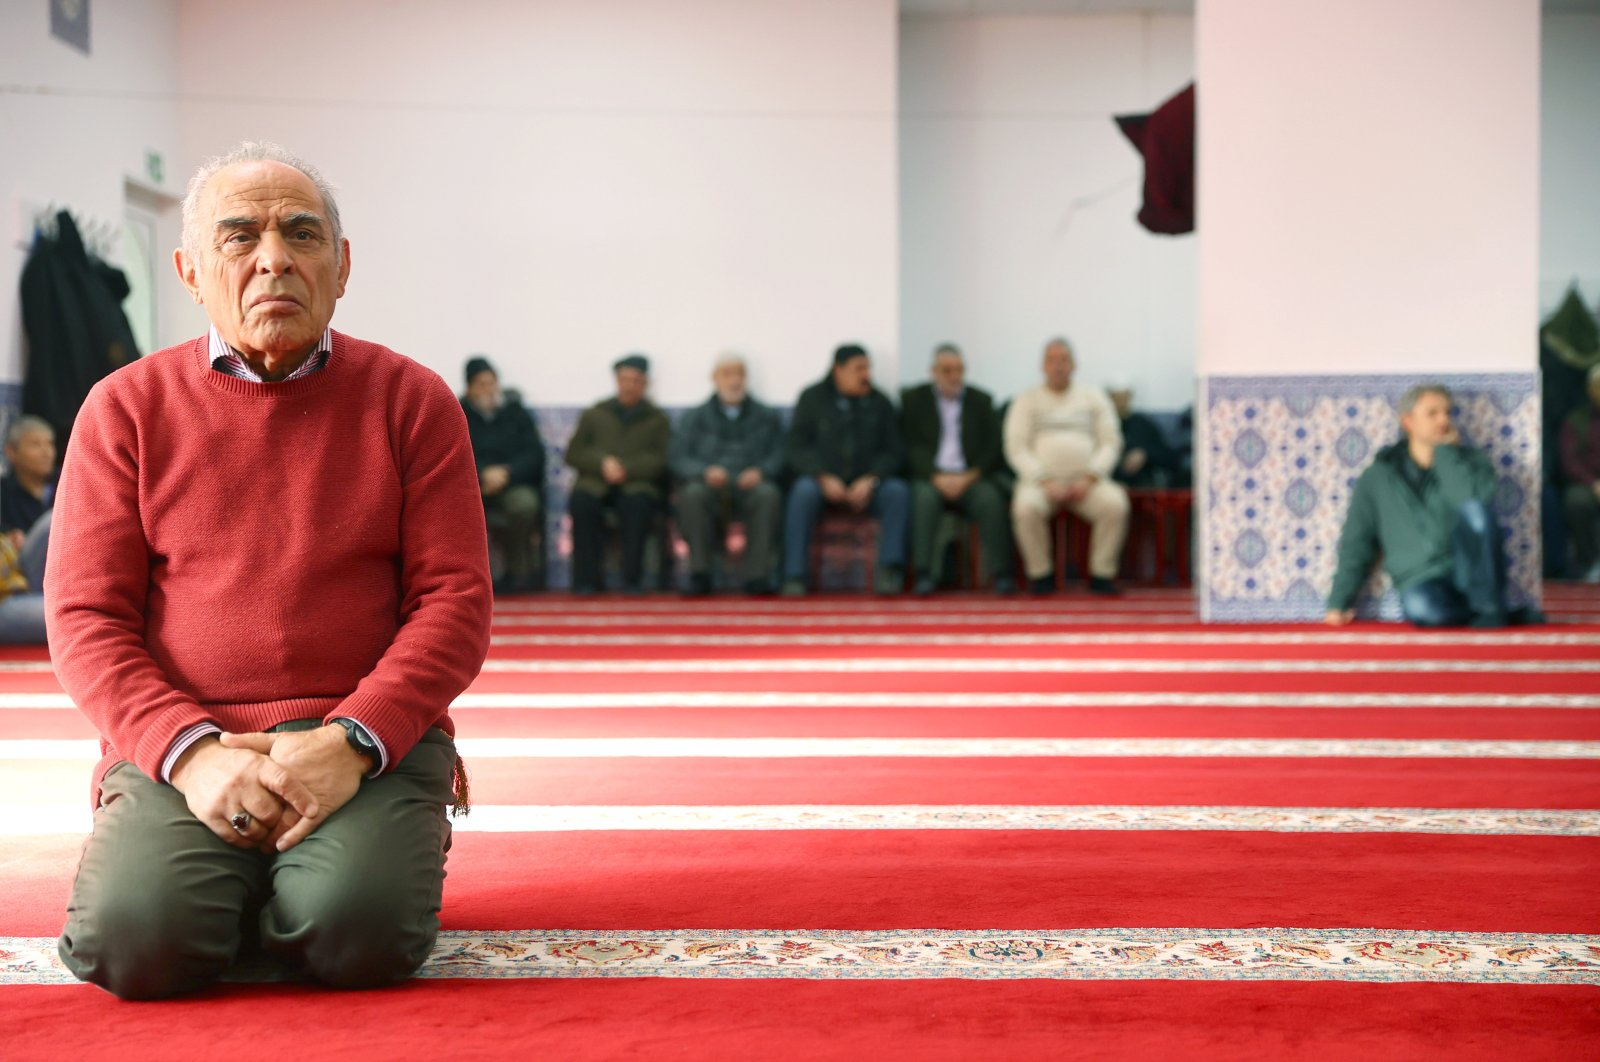 Men attend the Friday prayer following a shooting, at the mosque in Hanau, near Frankfurt, Germany, Feb. 21, 2020. (Reuters Photo)